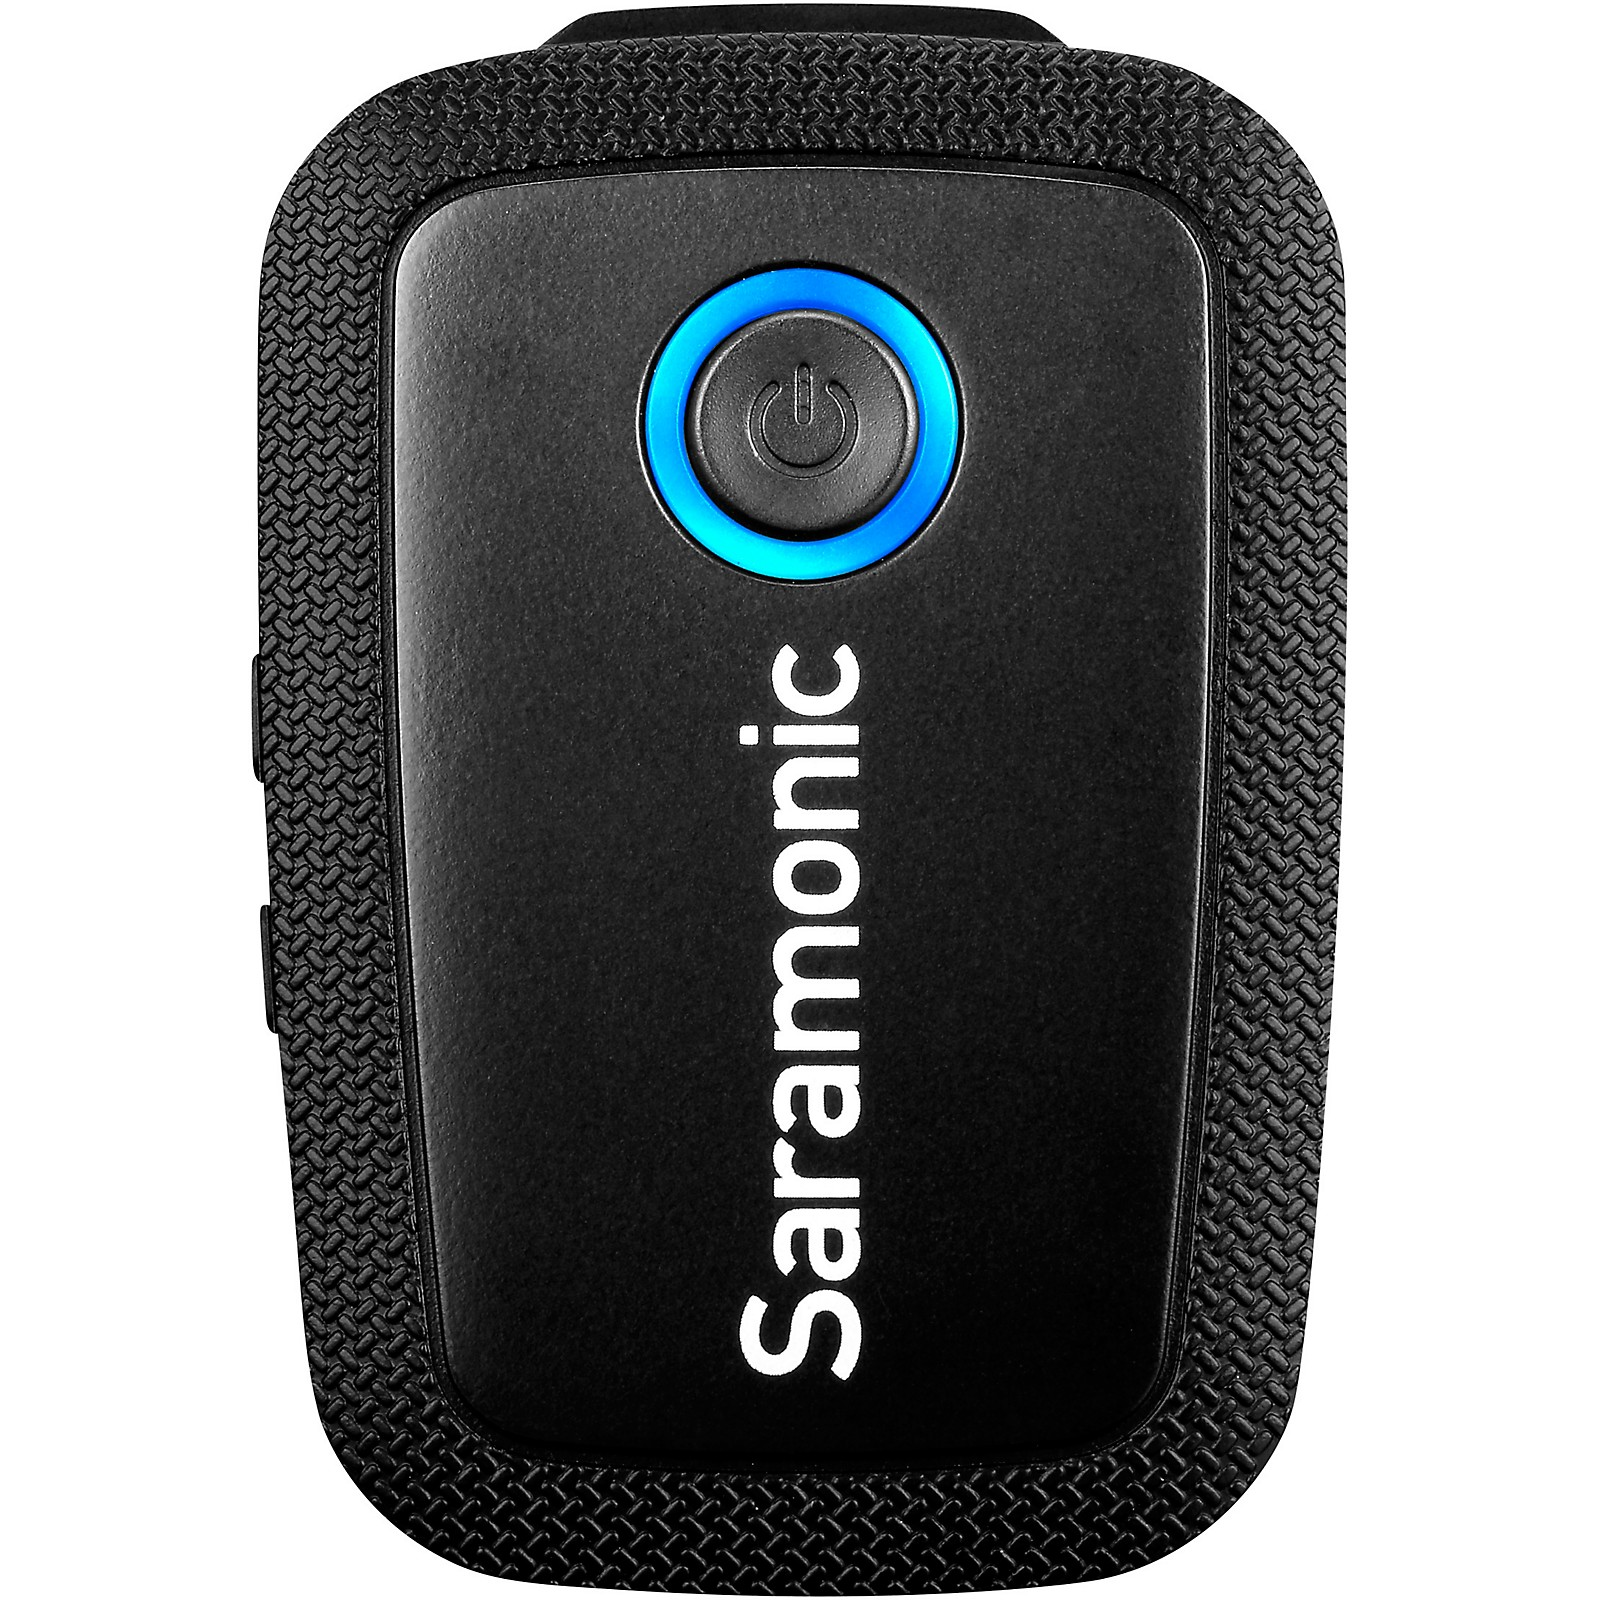 Saramonic Blink 500 TX Ultracompact Wireless Microphone Clip-On Transmitter